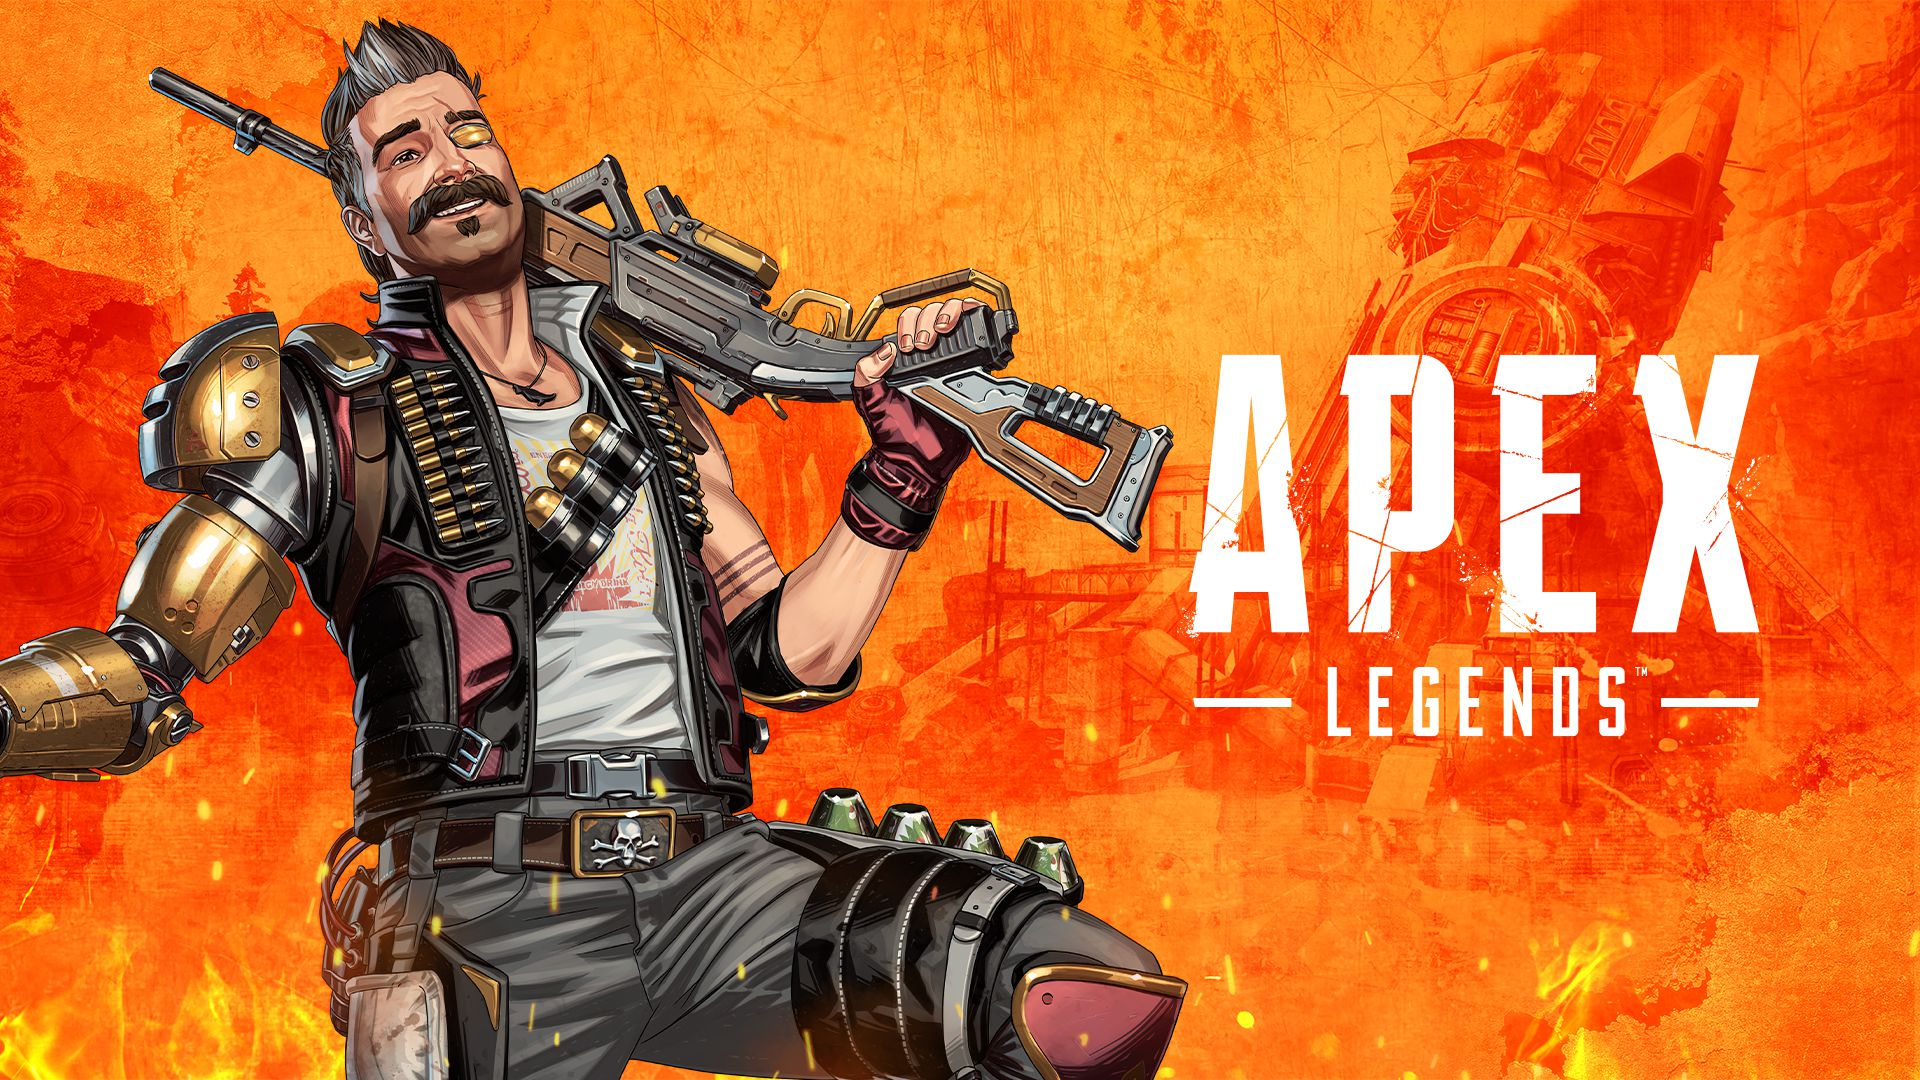 Apex Legends season 8 legend